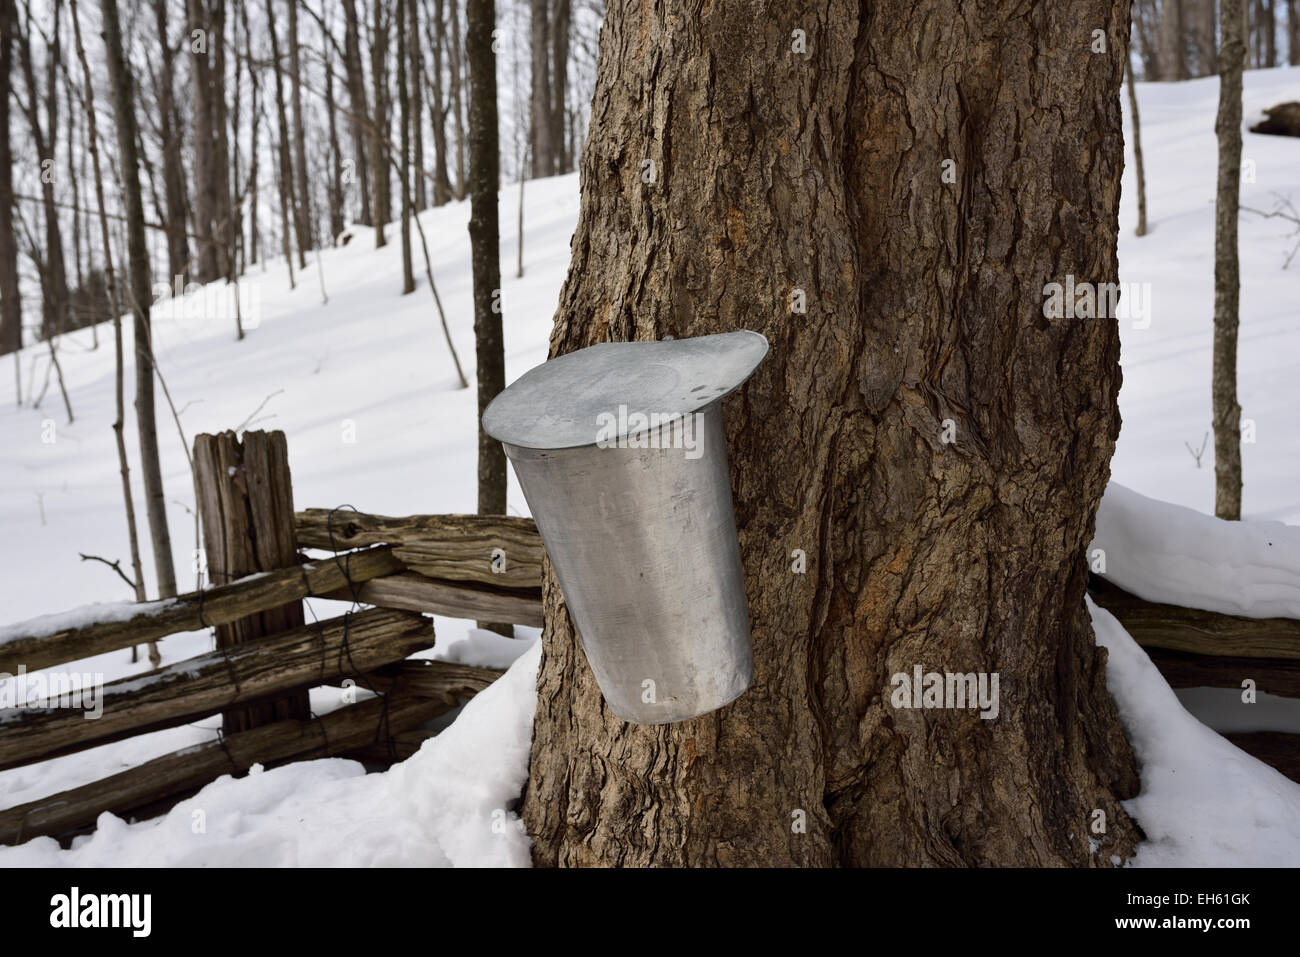 Bucket on old sugar Maple tree in snow covered Ontario forest to collect sap for syrup in March Canada - Stock Image